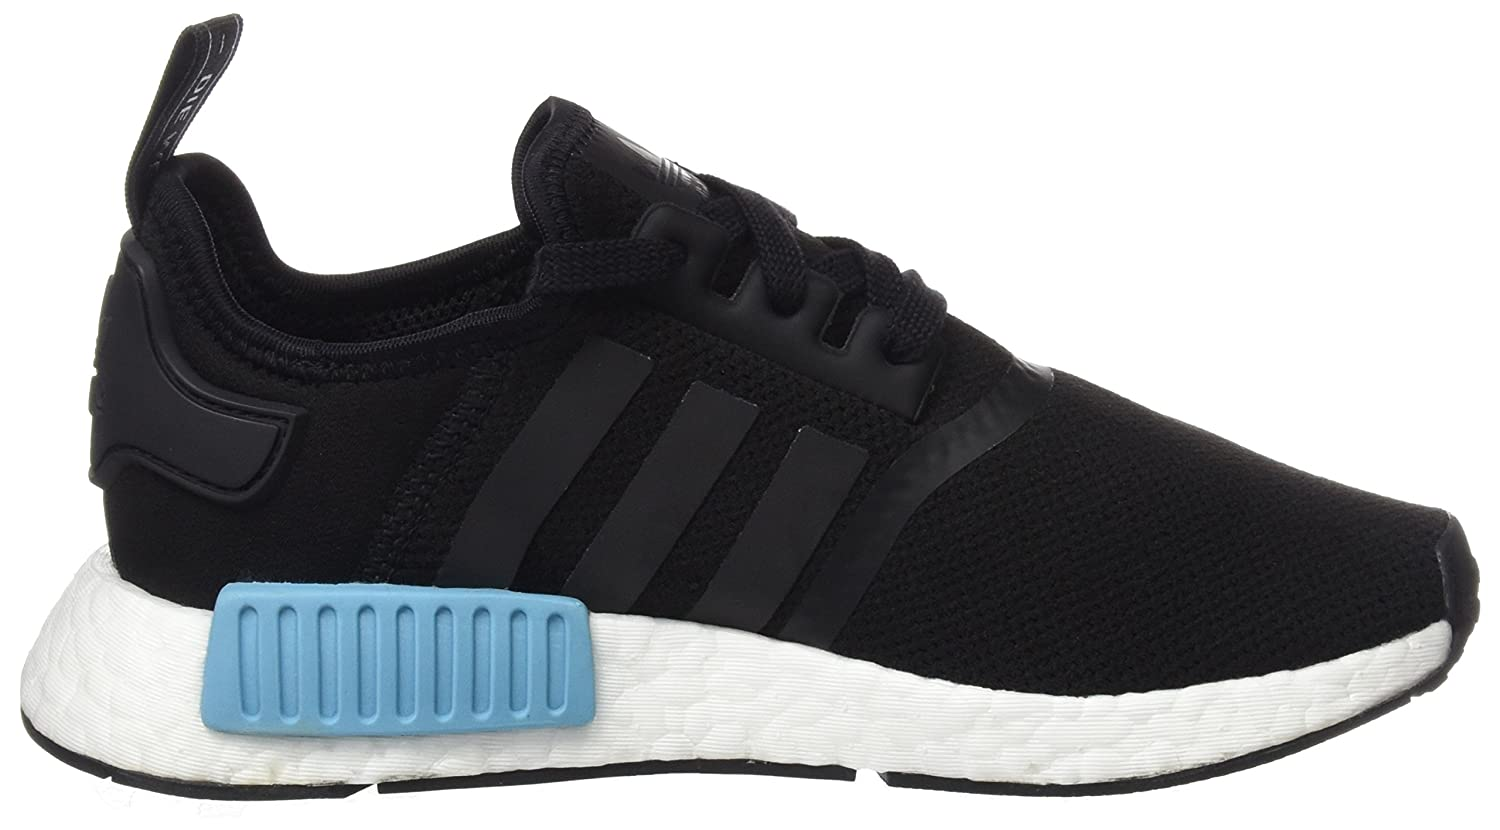 a51973a8a8ee5 NMD R1 Primeknit Womens in Shock Pink Core Black by Adidas  ADIDAS   Amazon.ca  Shoes   Handbags